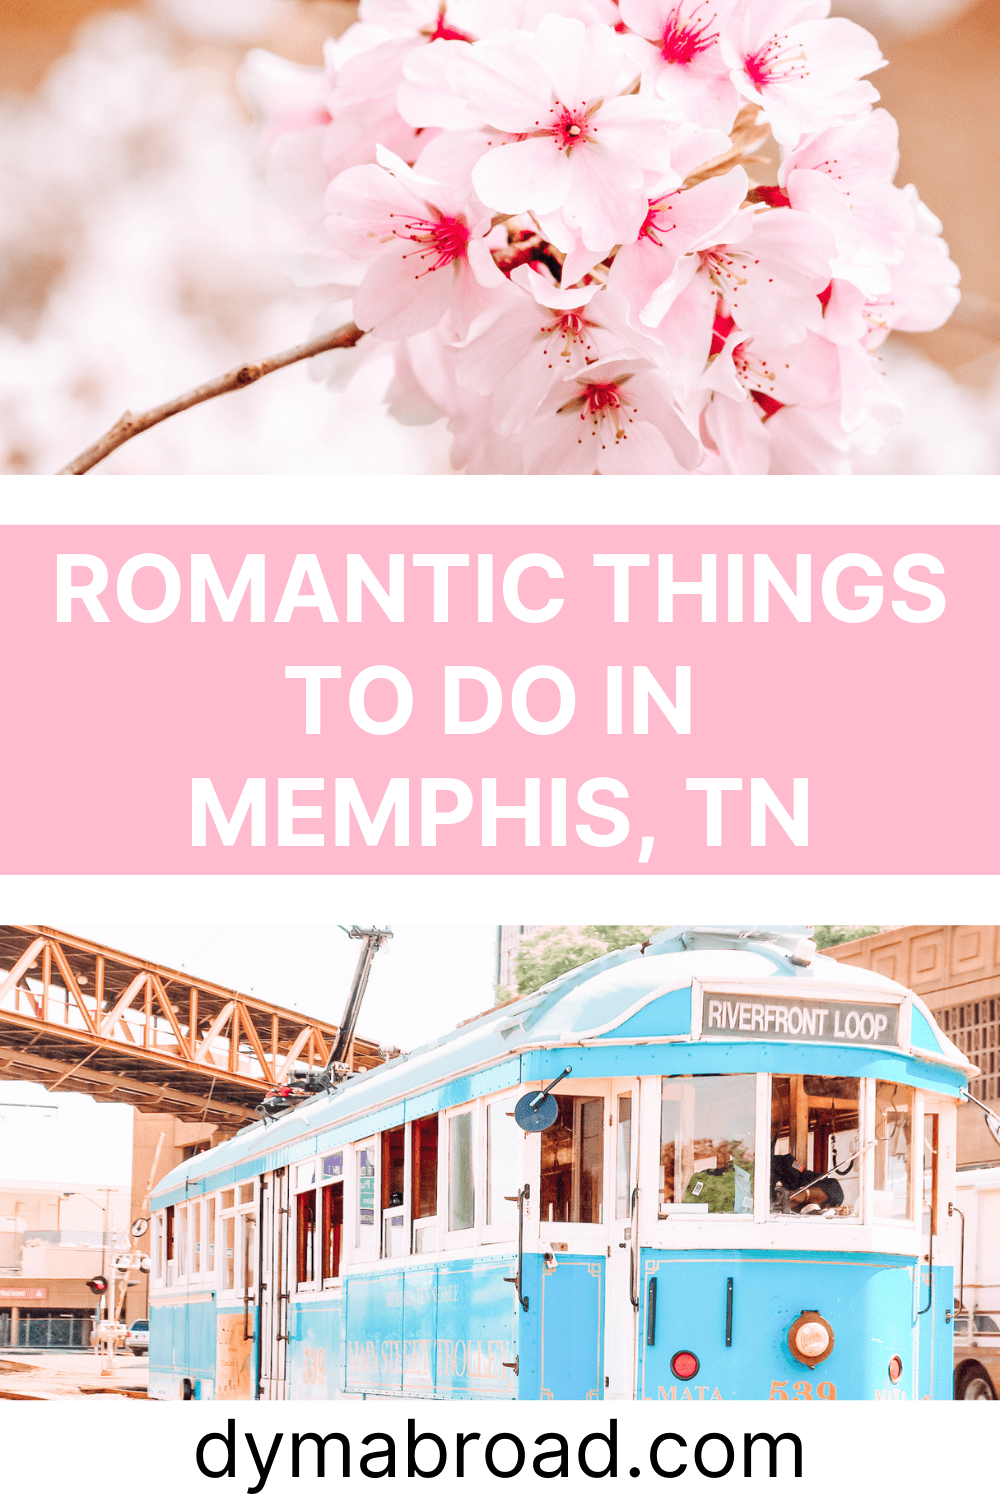 Romantic things to do in Memphis second Pinterest image